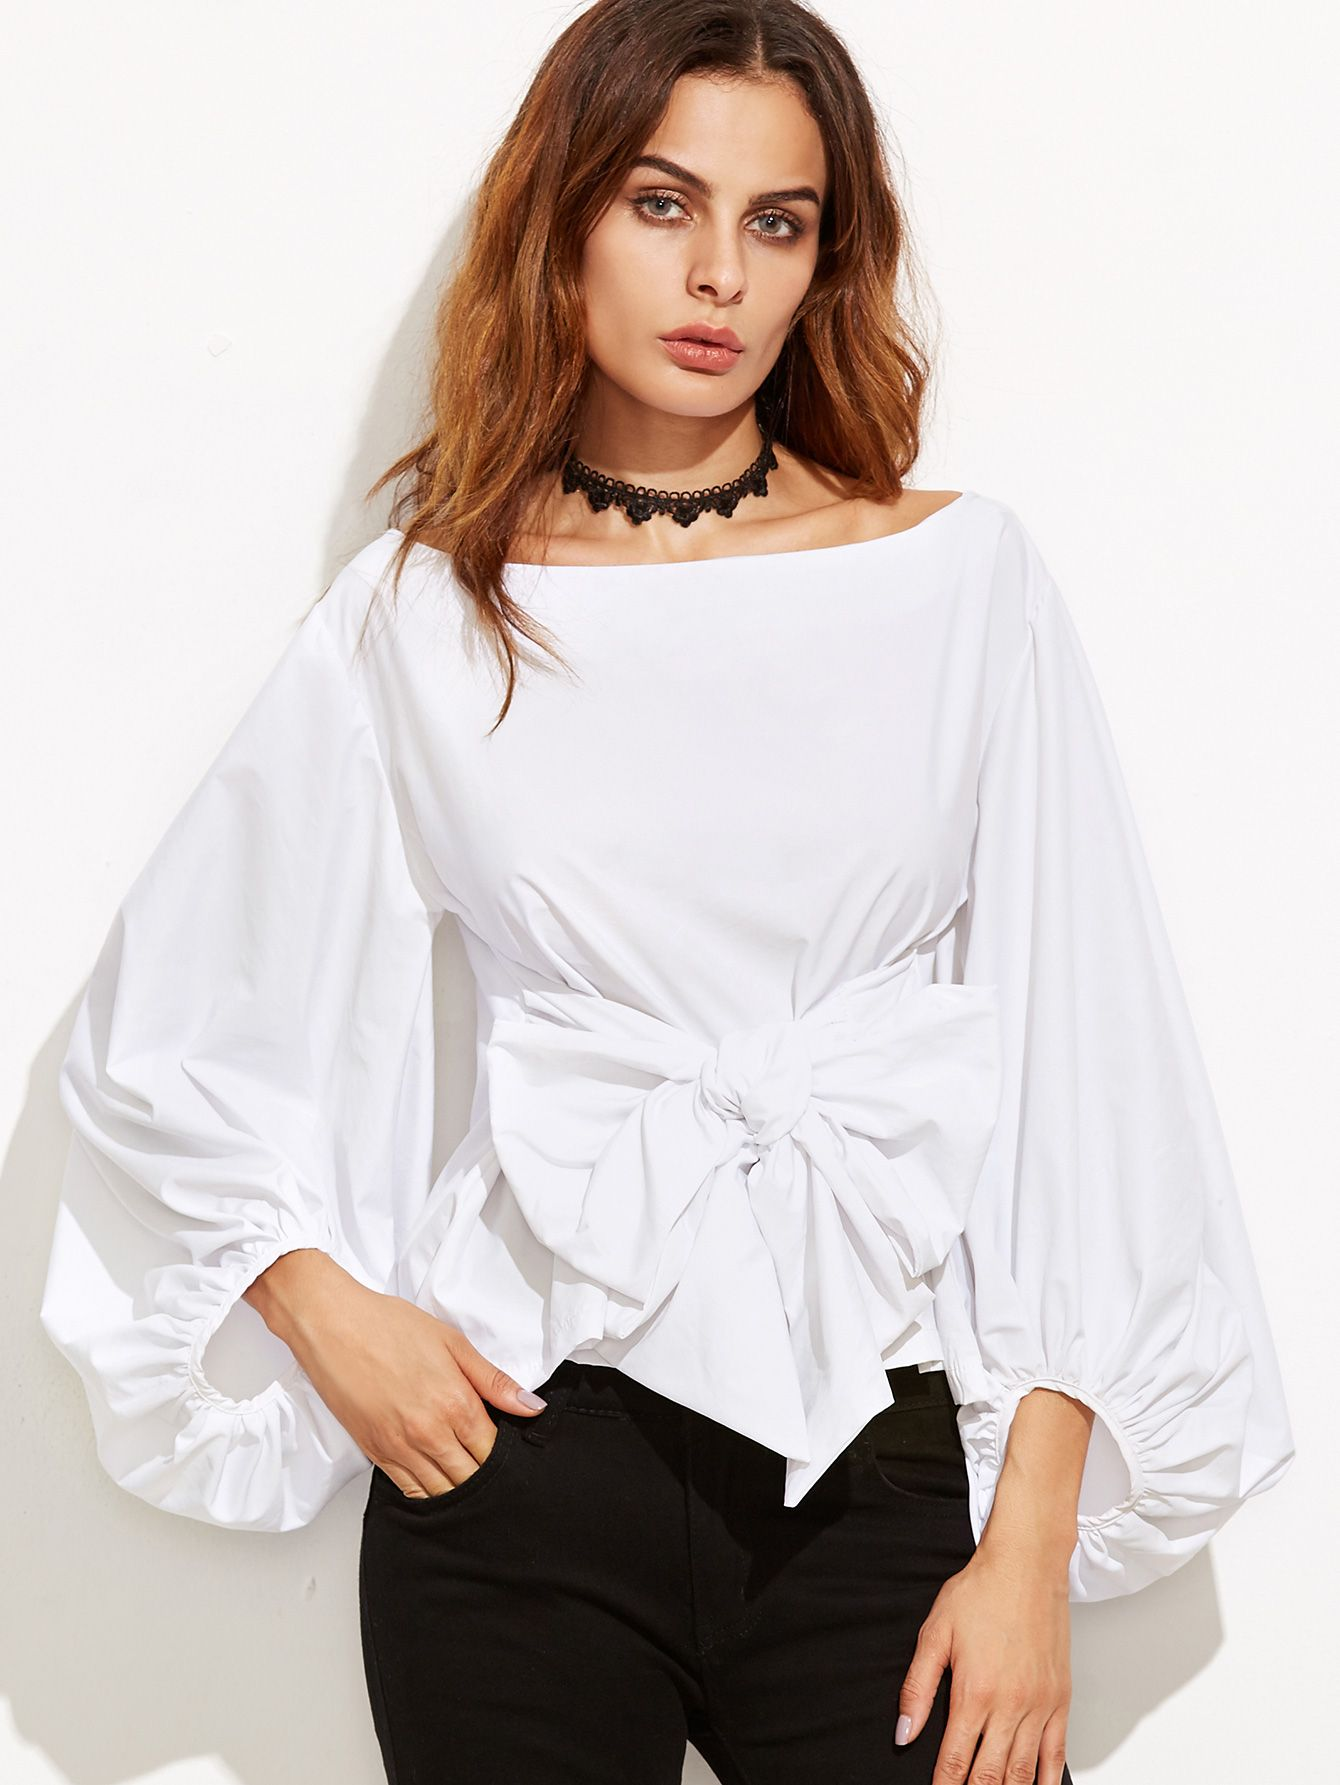 d08825d39feecf Shop White Lantern Sleeve Top With Bow online. SheIn offers White Lantern Sleeve  Top With Bow & more to fit your fashionable needs.